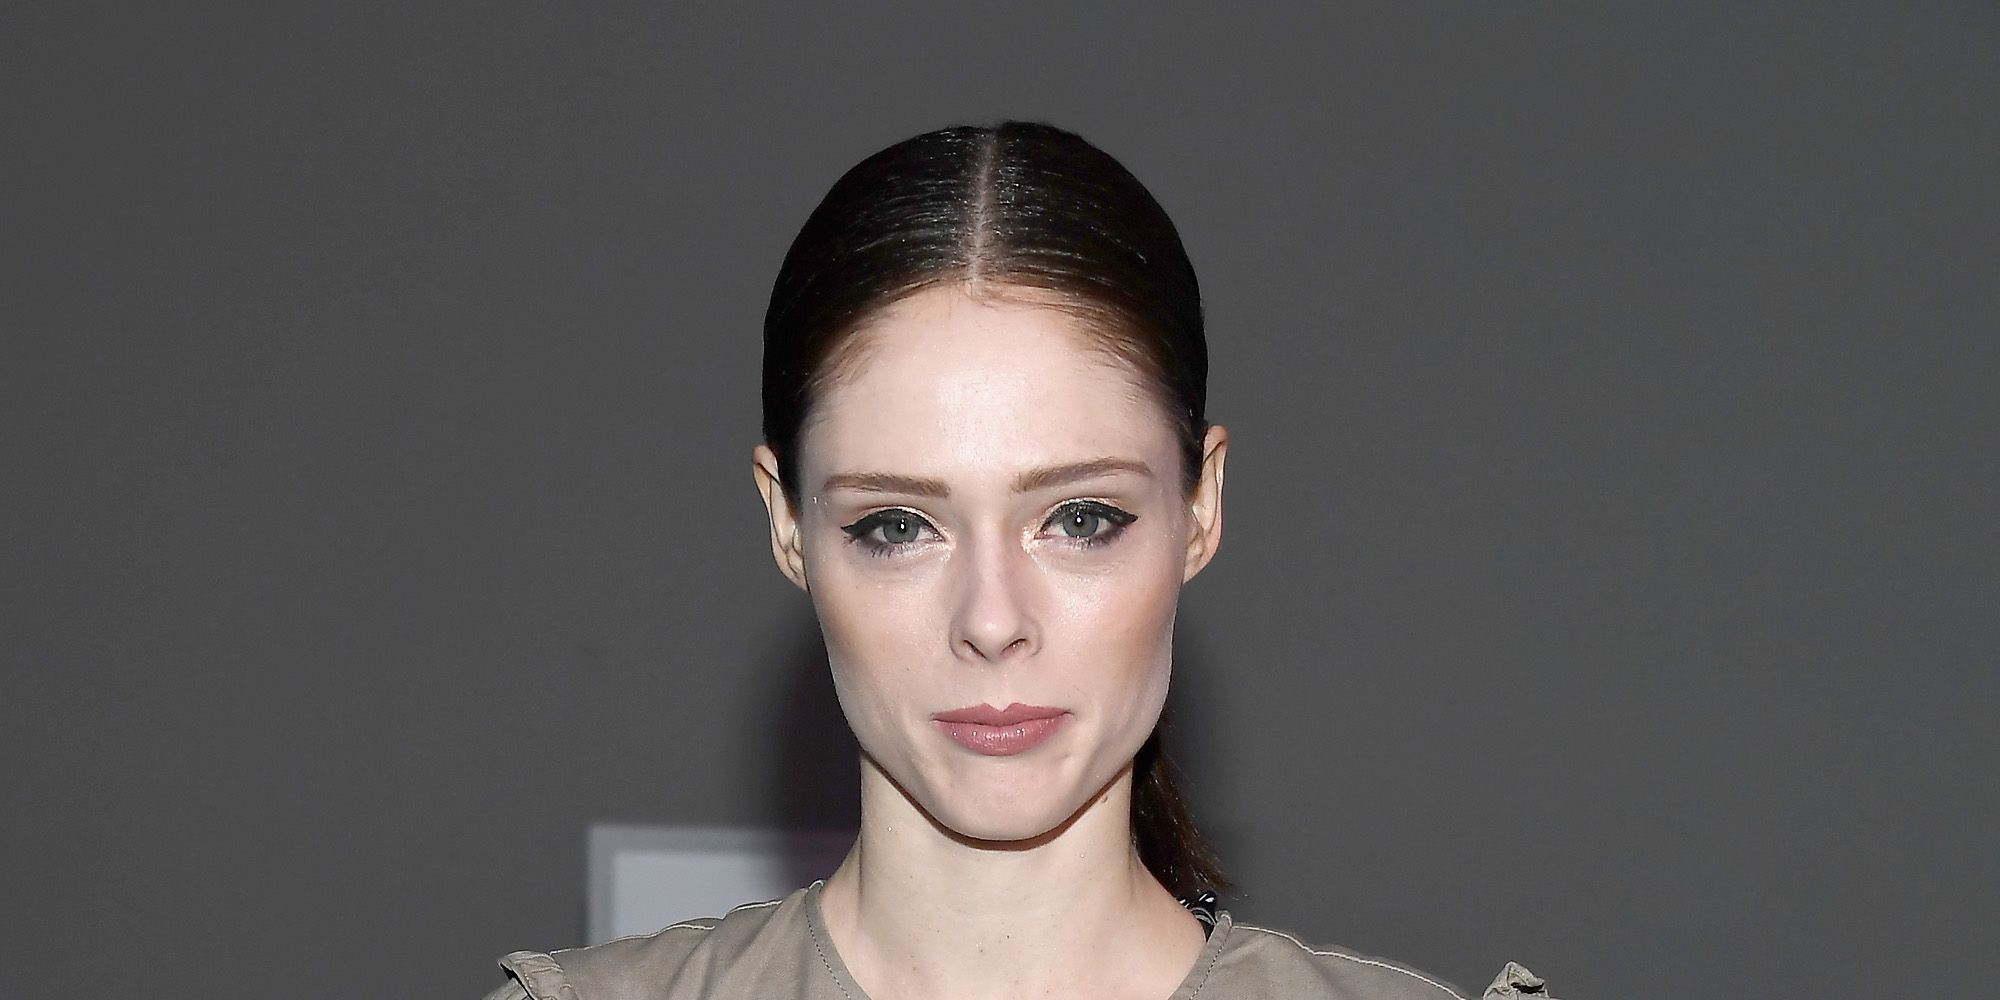 Coco Rocha brought her daughter Ioni to New York fashion week